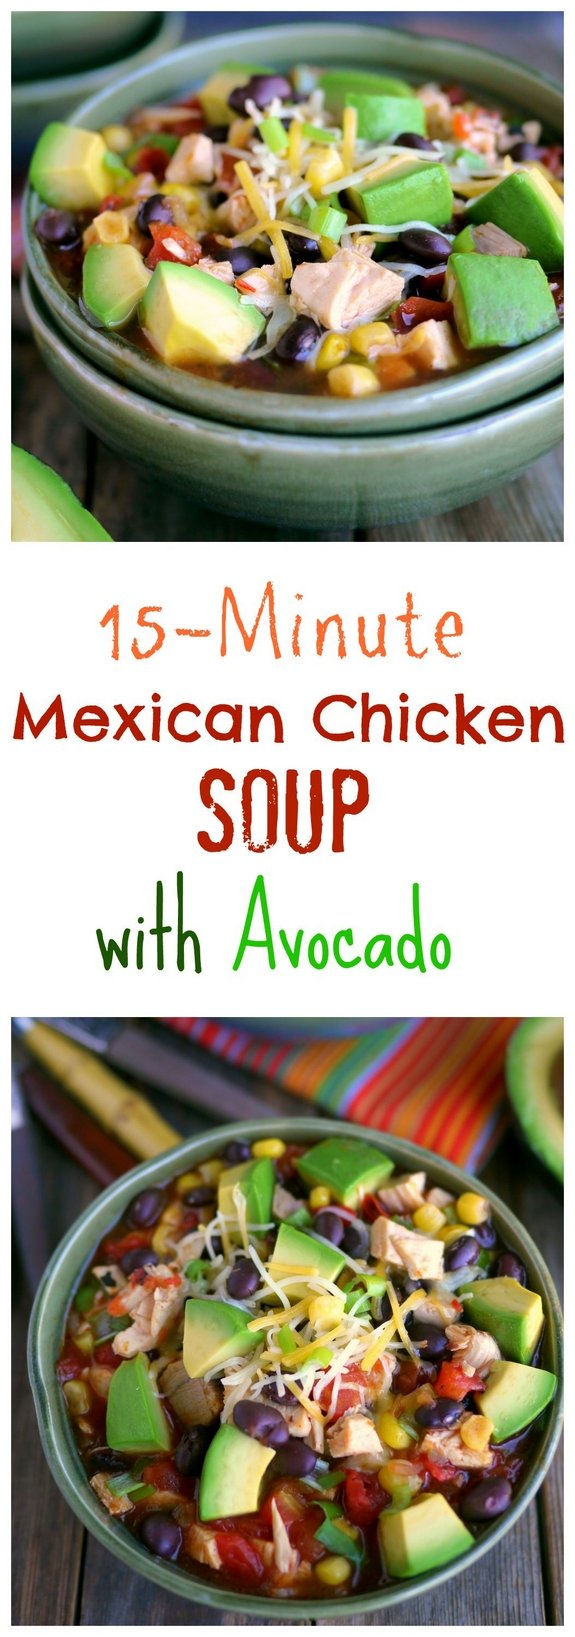 15 Minute Mexican Chicken Soup with Avocado